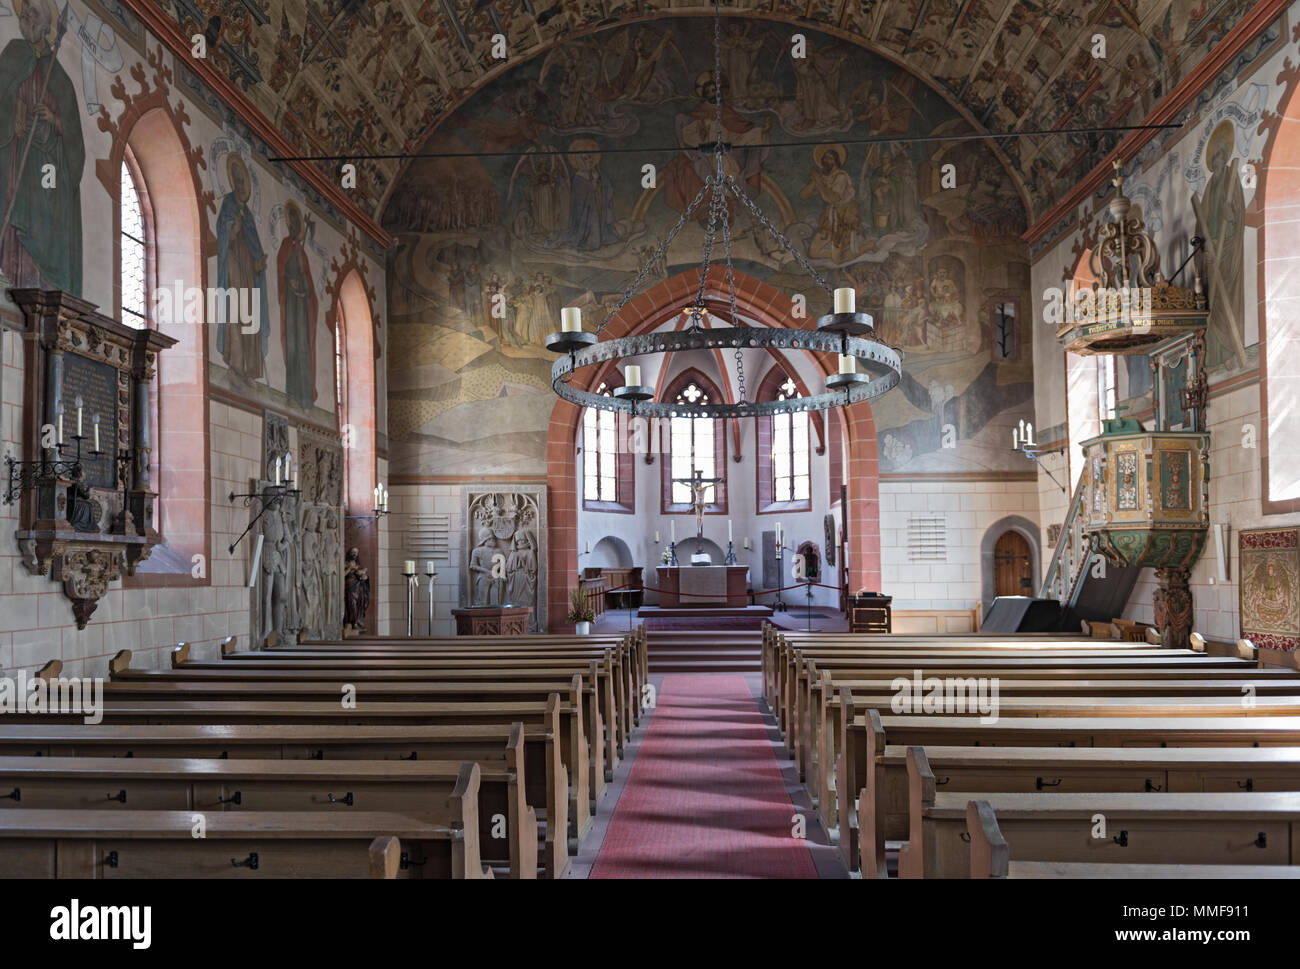 the city church st. johann, kronberg im taunus from the inside - Stock Image